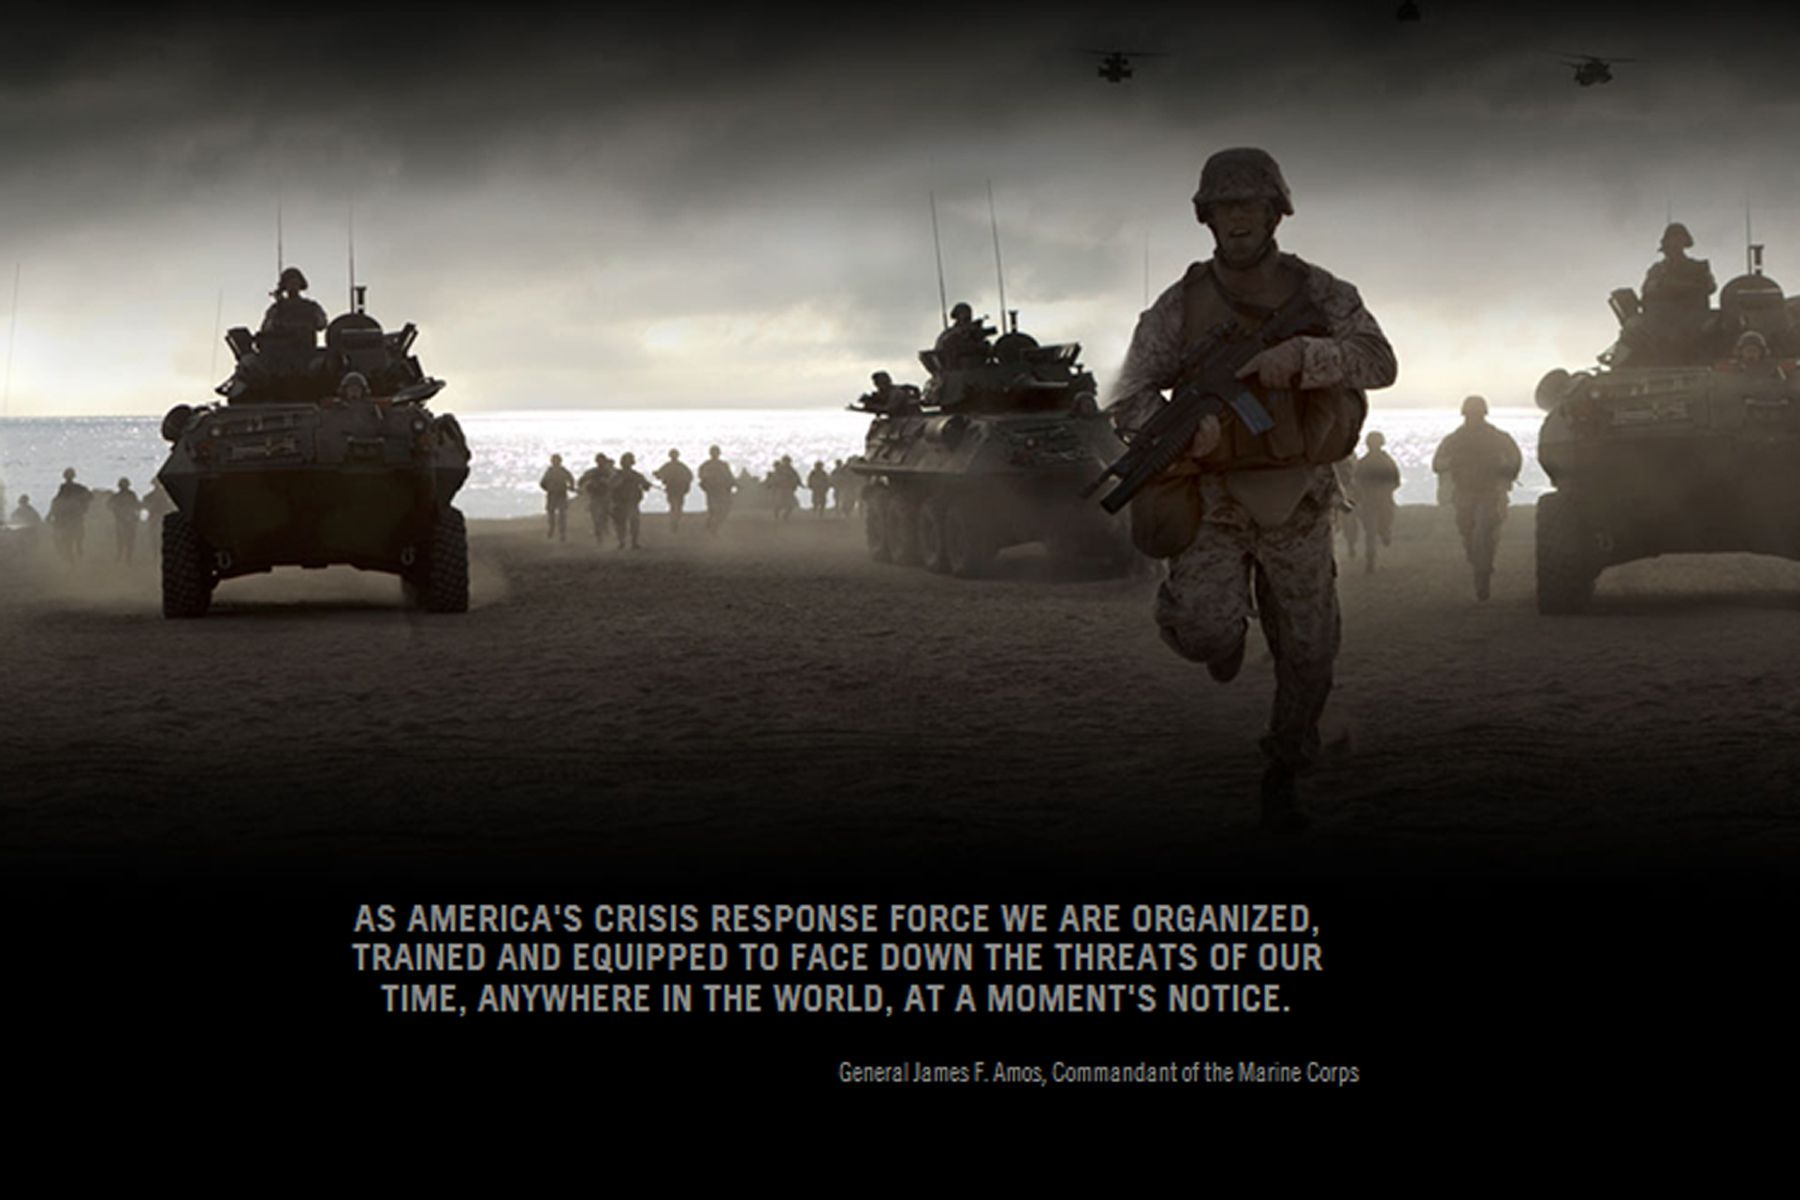 Marines move toward the sound of chaos | Marine Corps | Pinterest ...